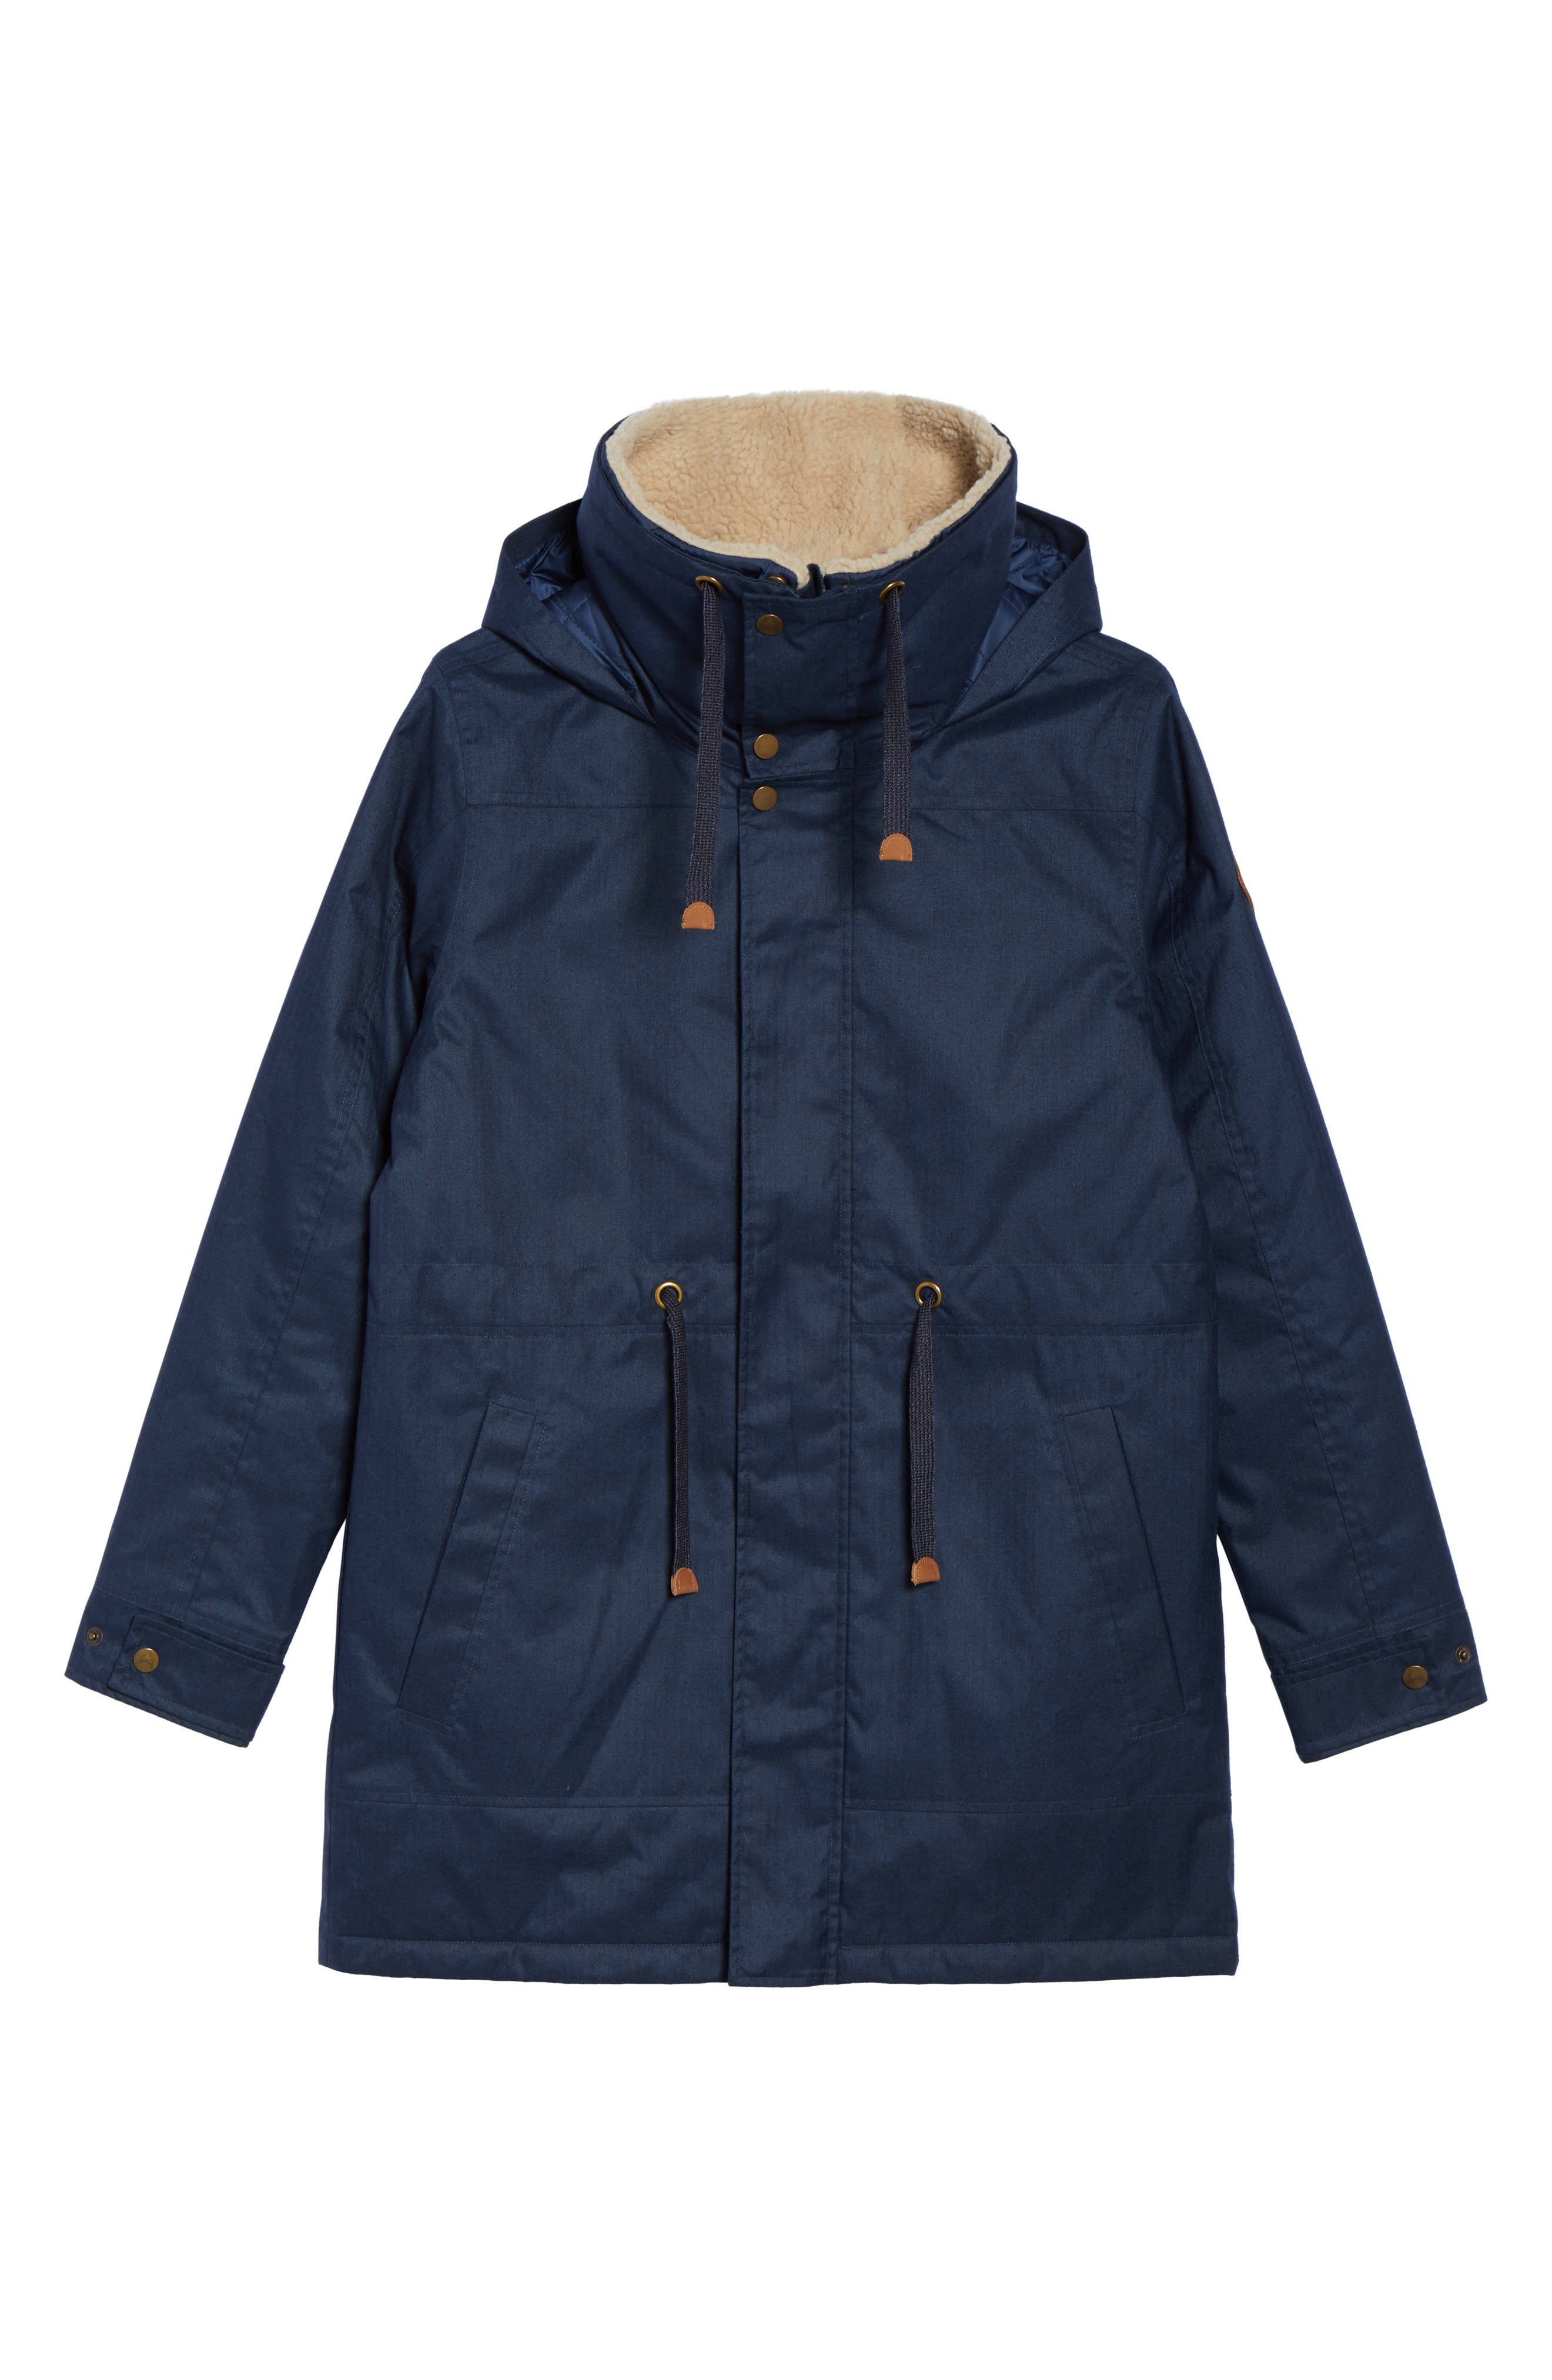 Hazelton Water-Resistant Hooded Jacket with Removable Fleece Lining,                             Alternate thumbnail 6, color,                             400